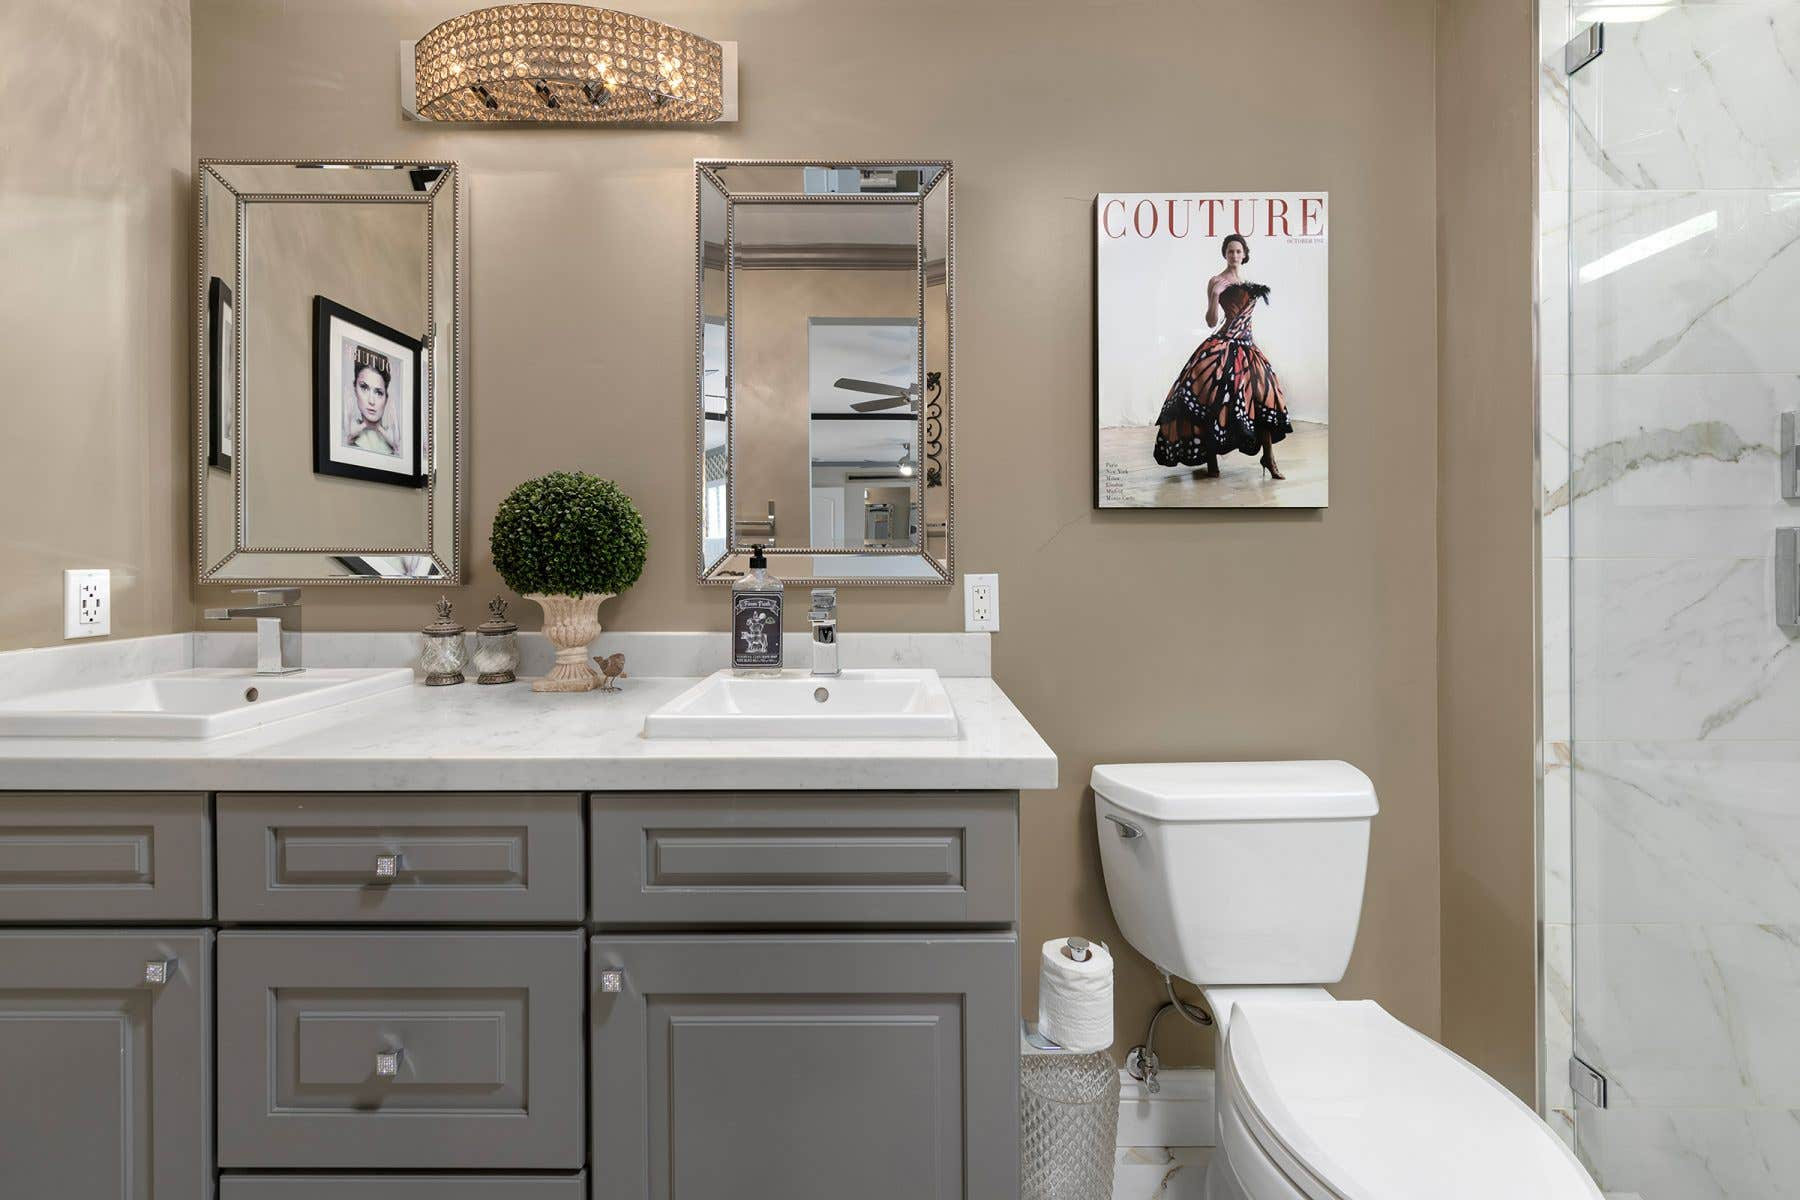 bathroom cabinets, vanities and remodeling best ideas